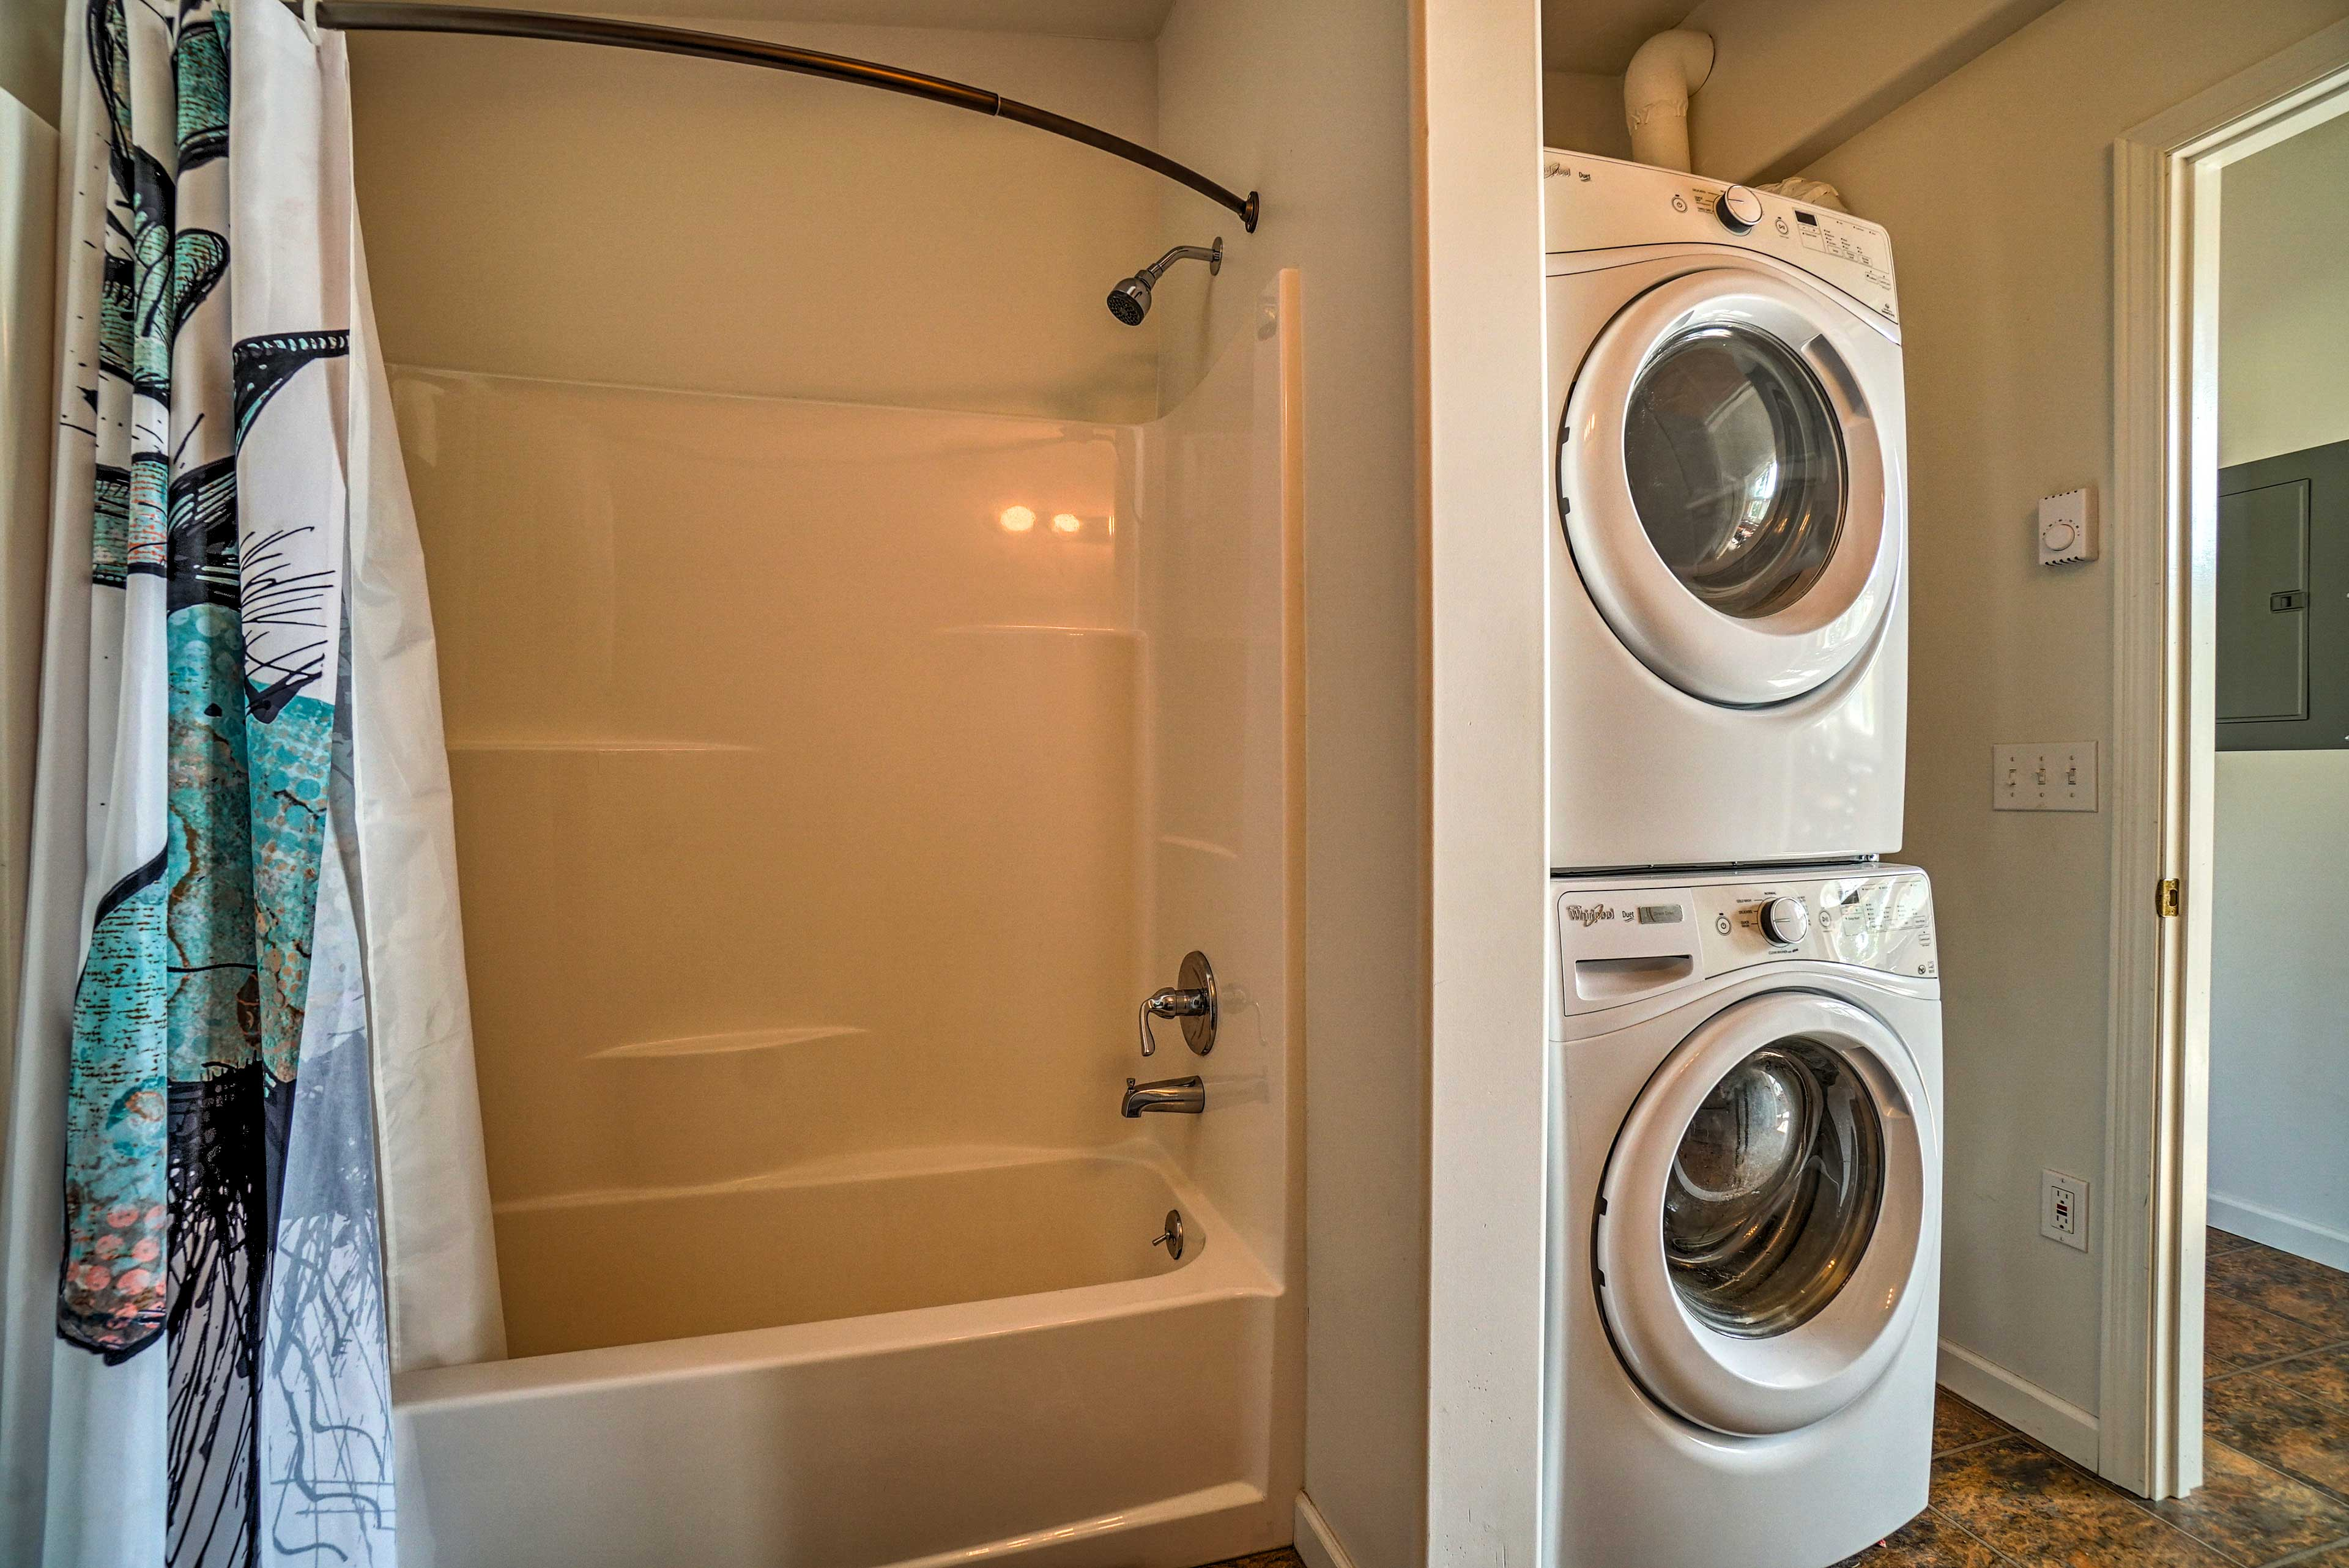 Wash your cloths in the in-unit washer and dryer.